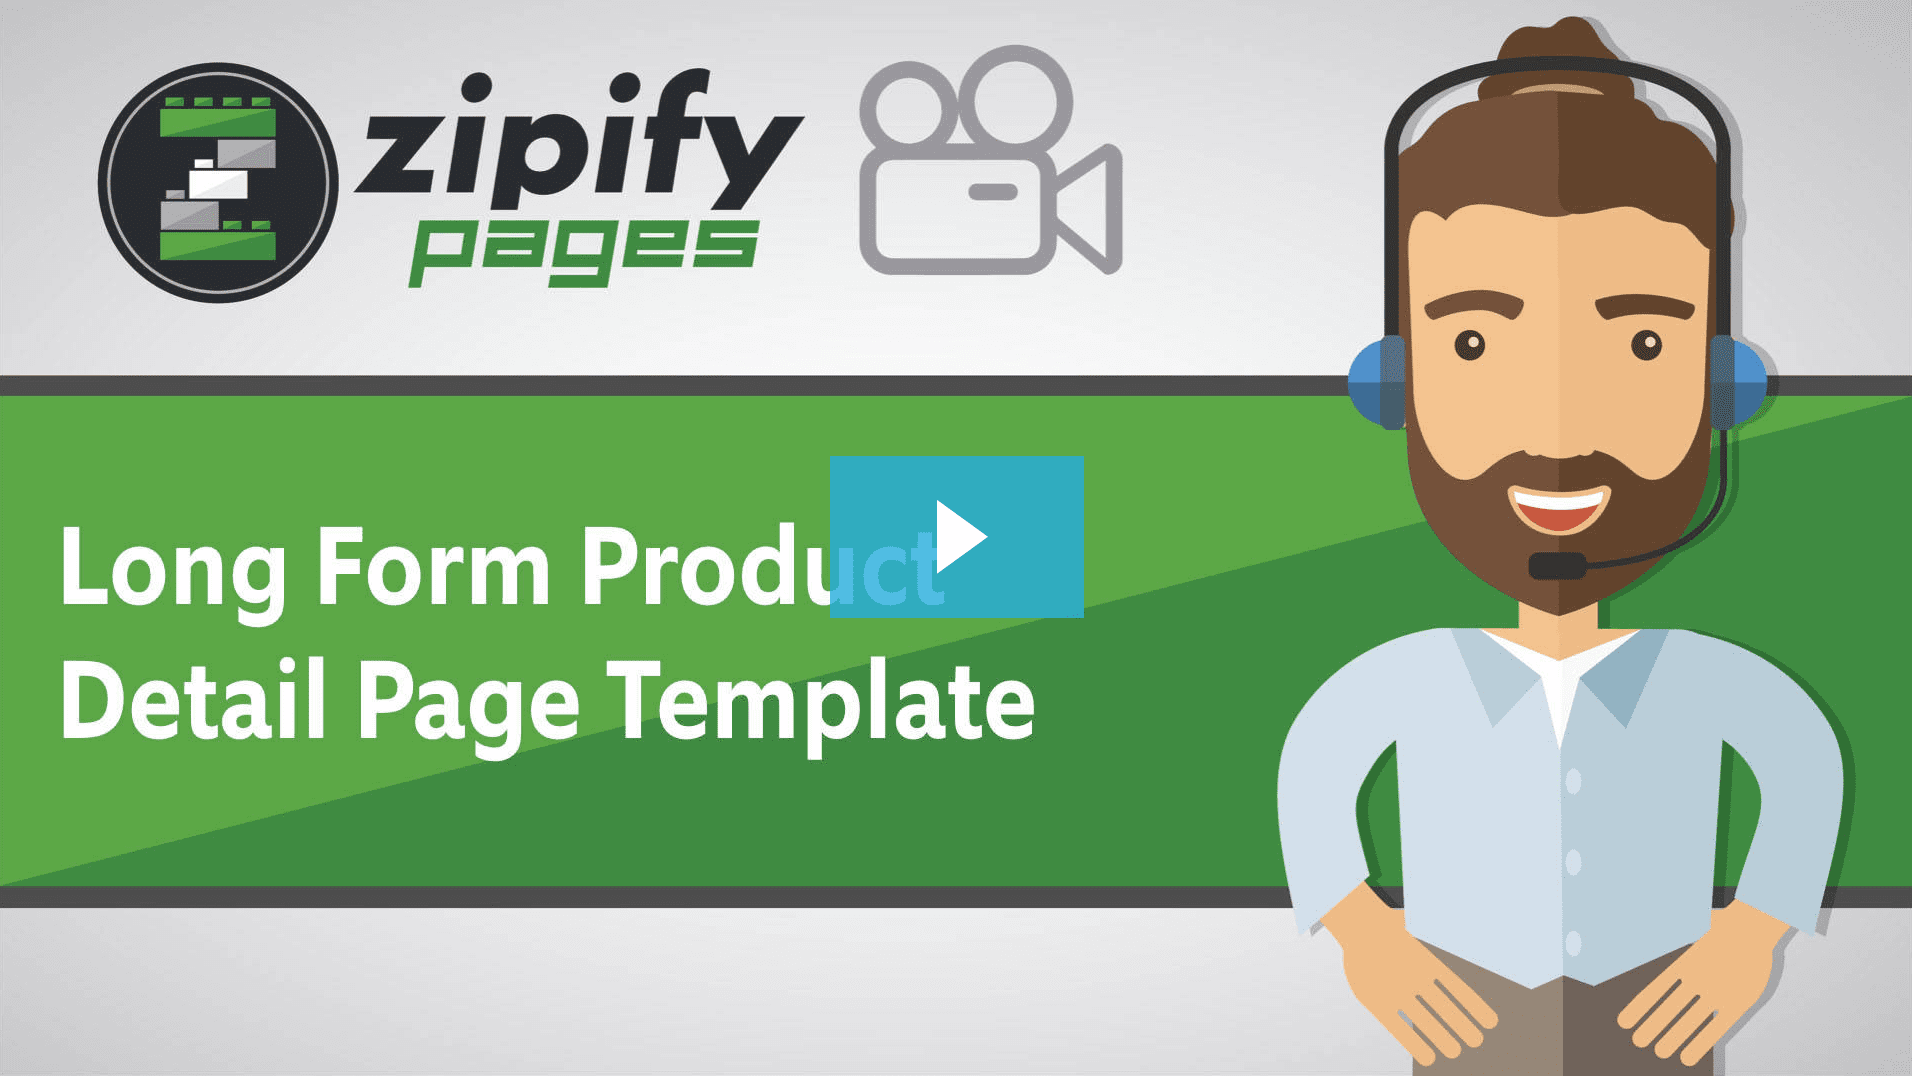 Zipify pages - long form product detail page template